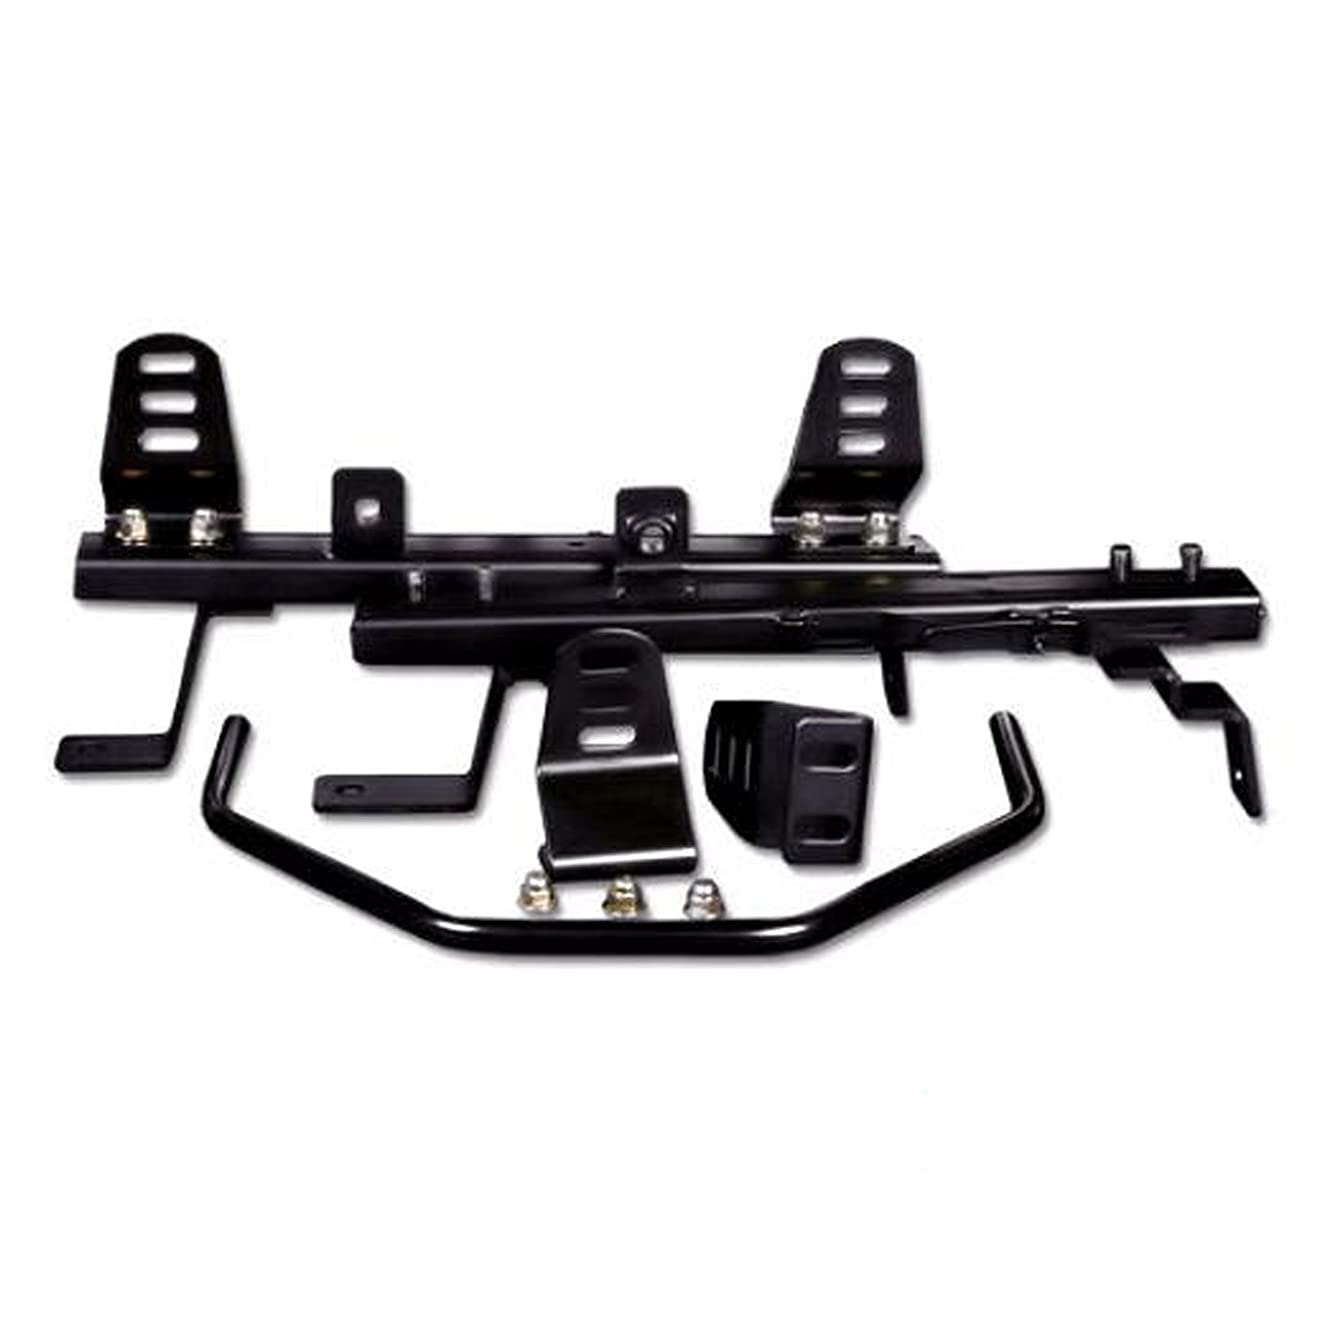 Buddy Club BC08-RSBSRDC5-L Racing Spec Left Side Seat Rail for Acura RSX 2002-up